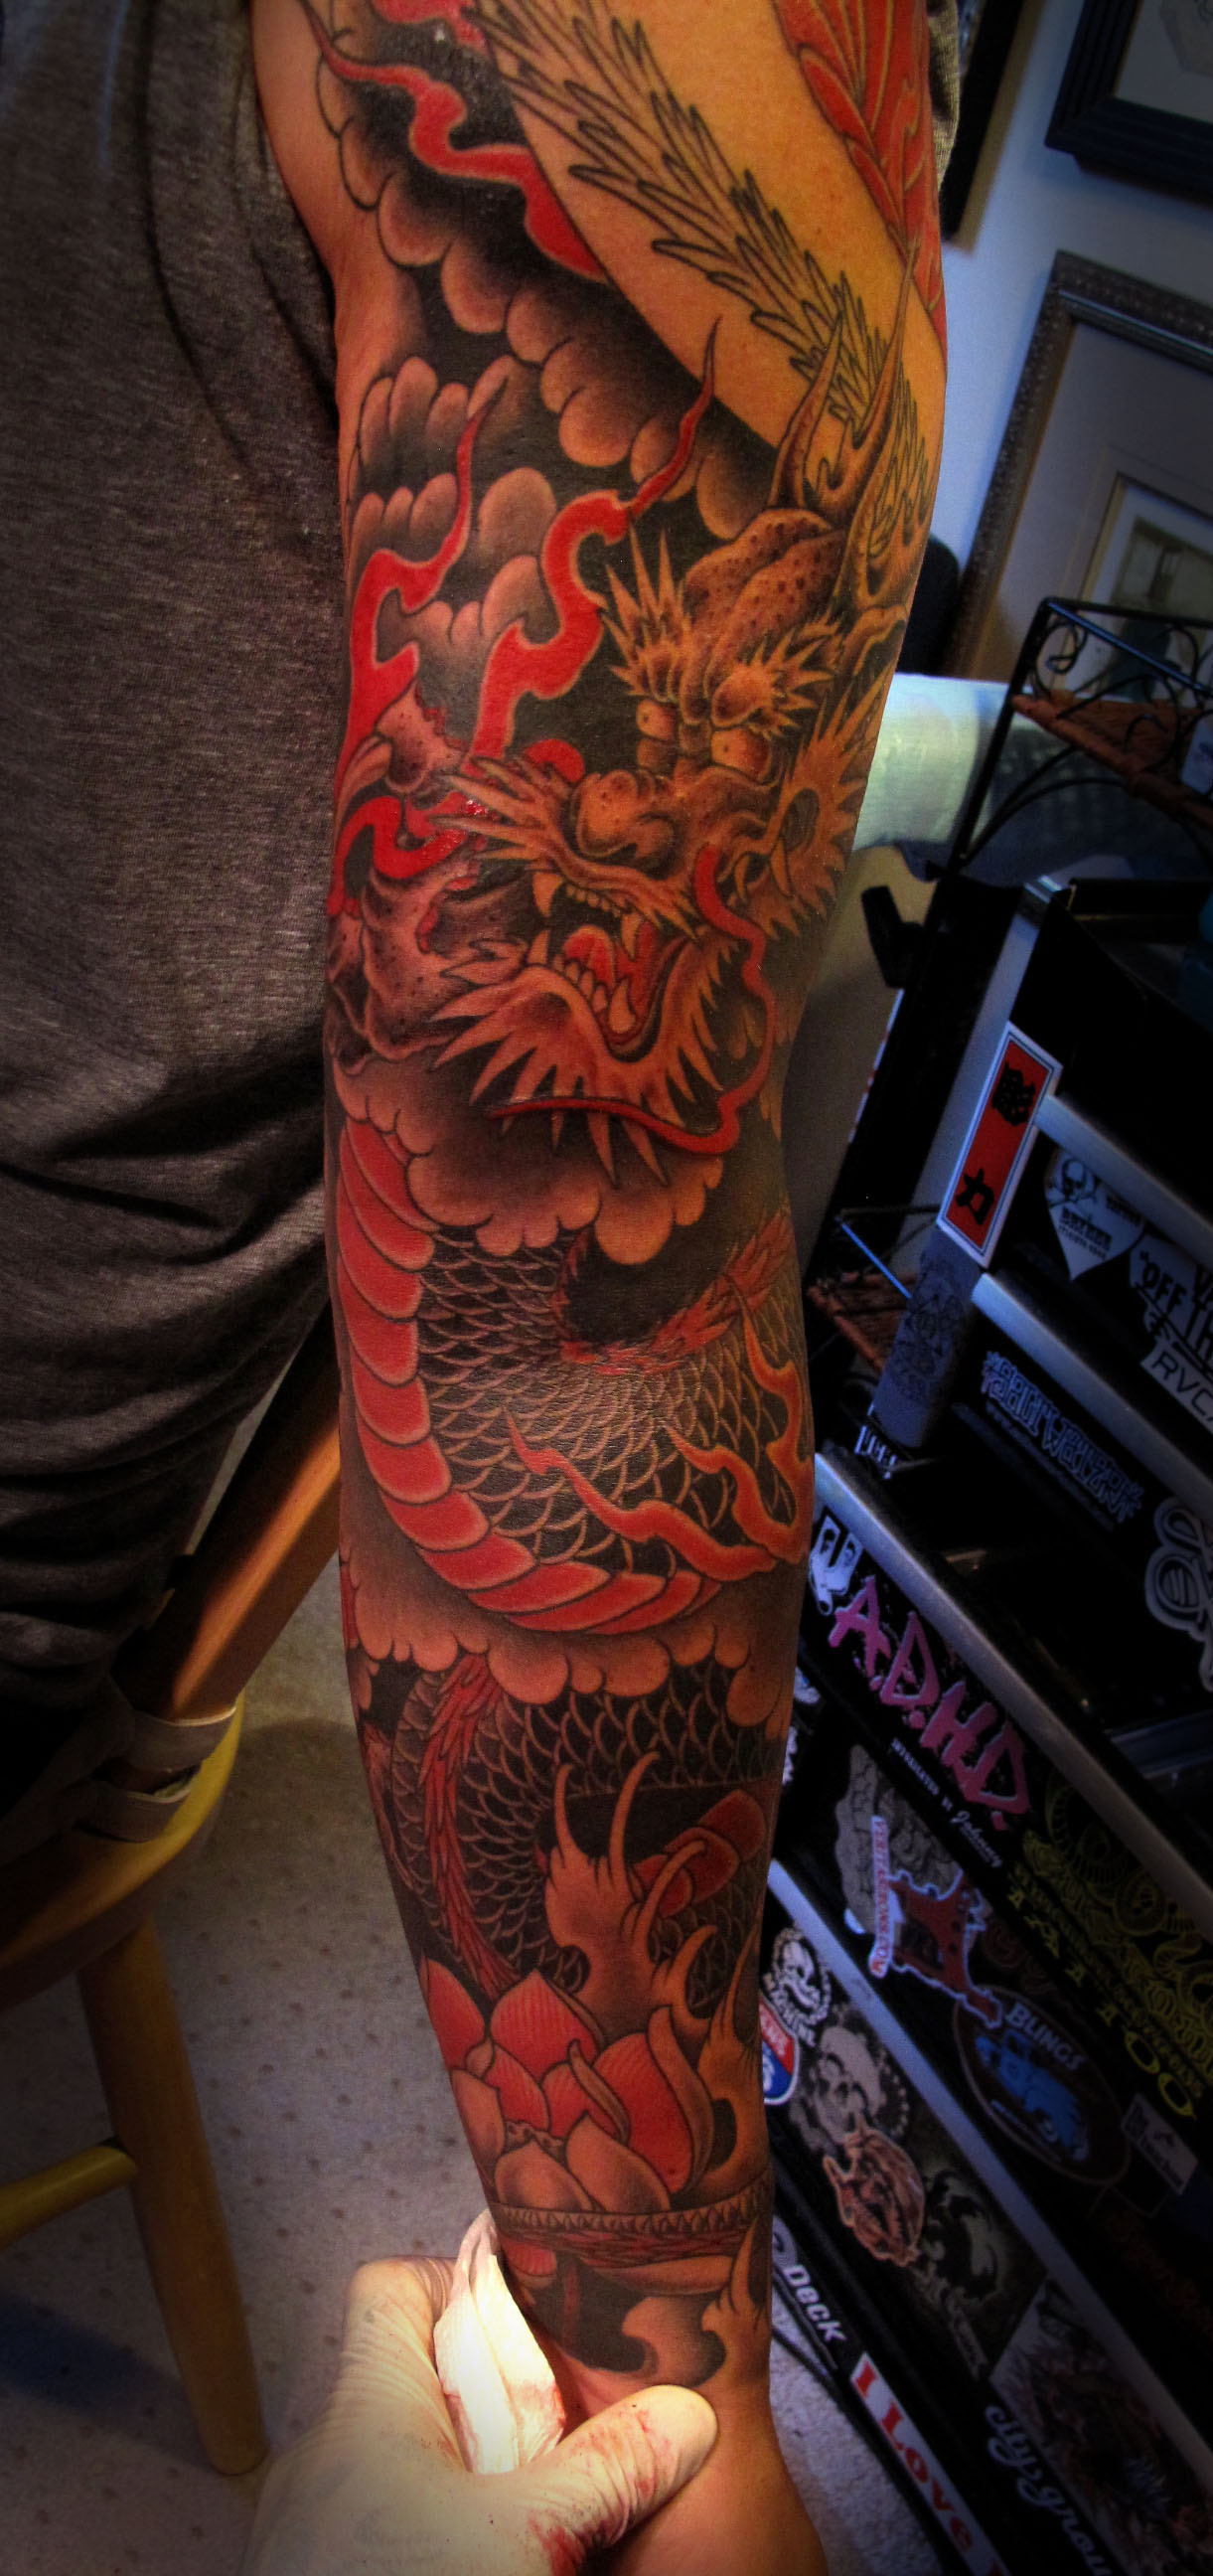 Japanese Tattoos Designs, Ideas and Meaning | Tattoos For You Uberhaxornova Tattoo Sleeve